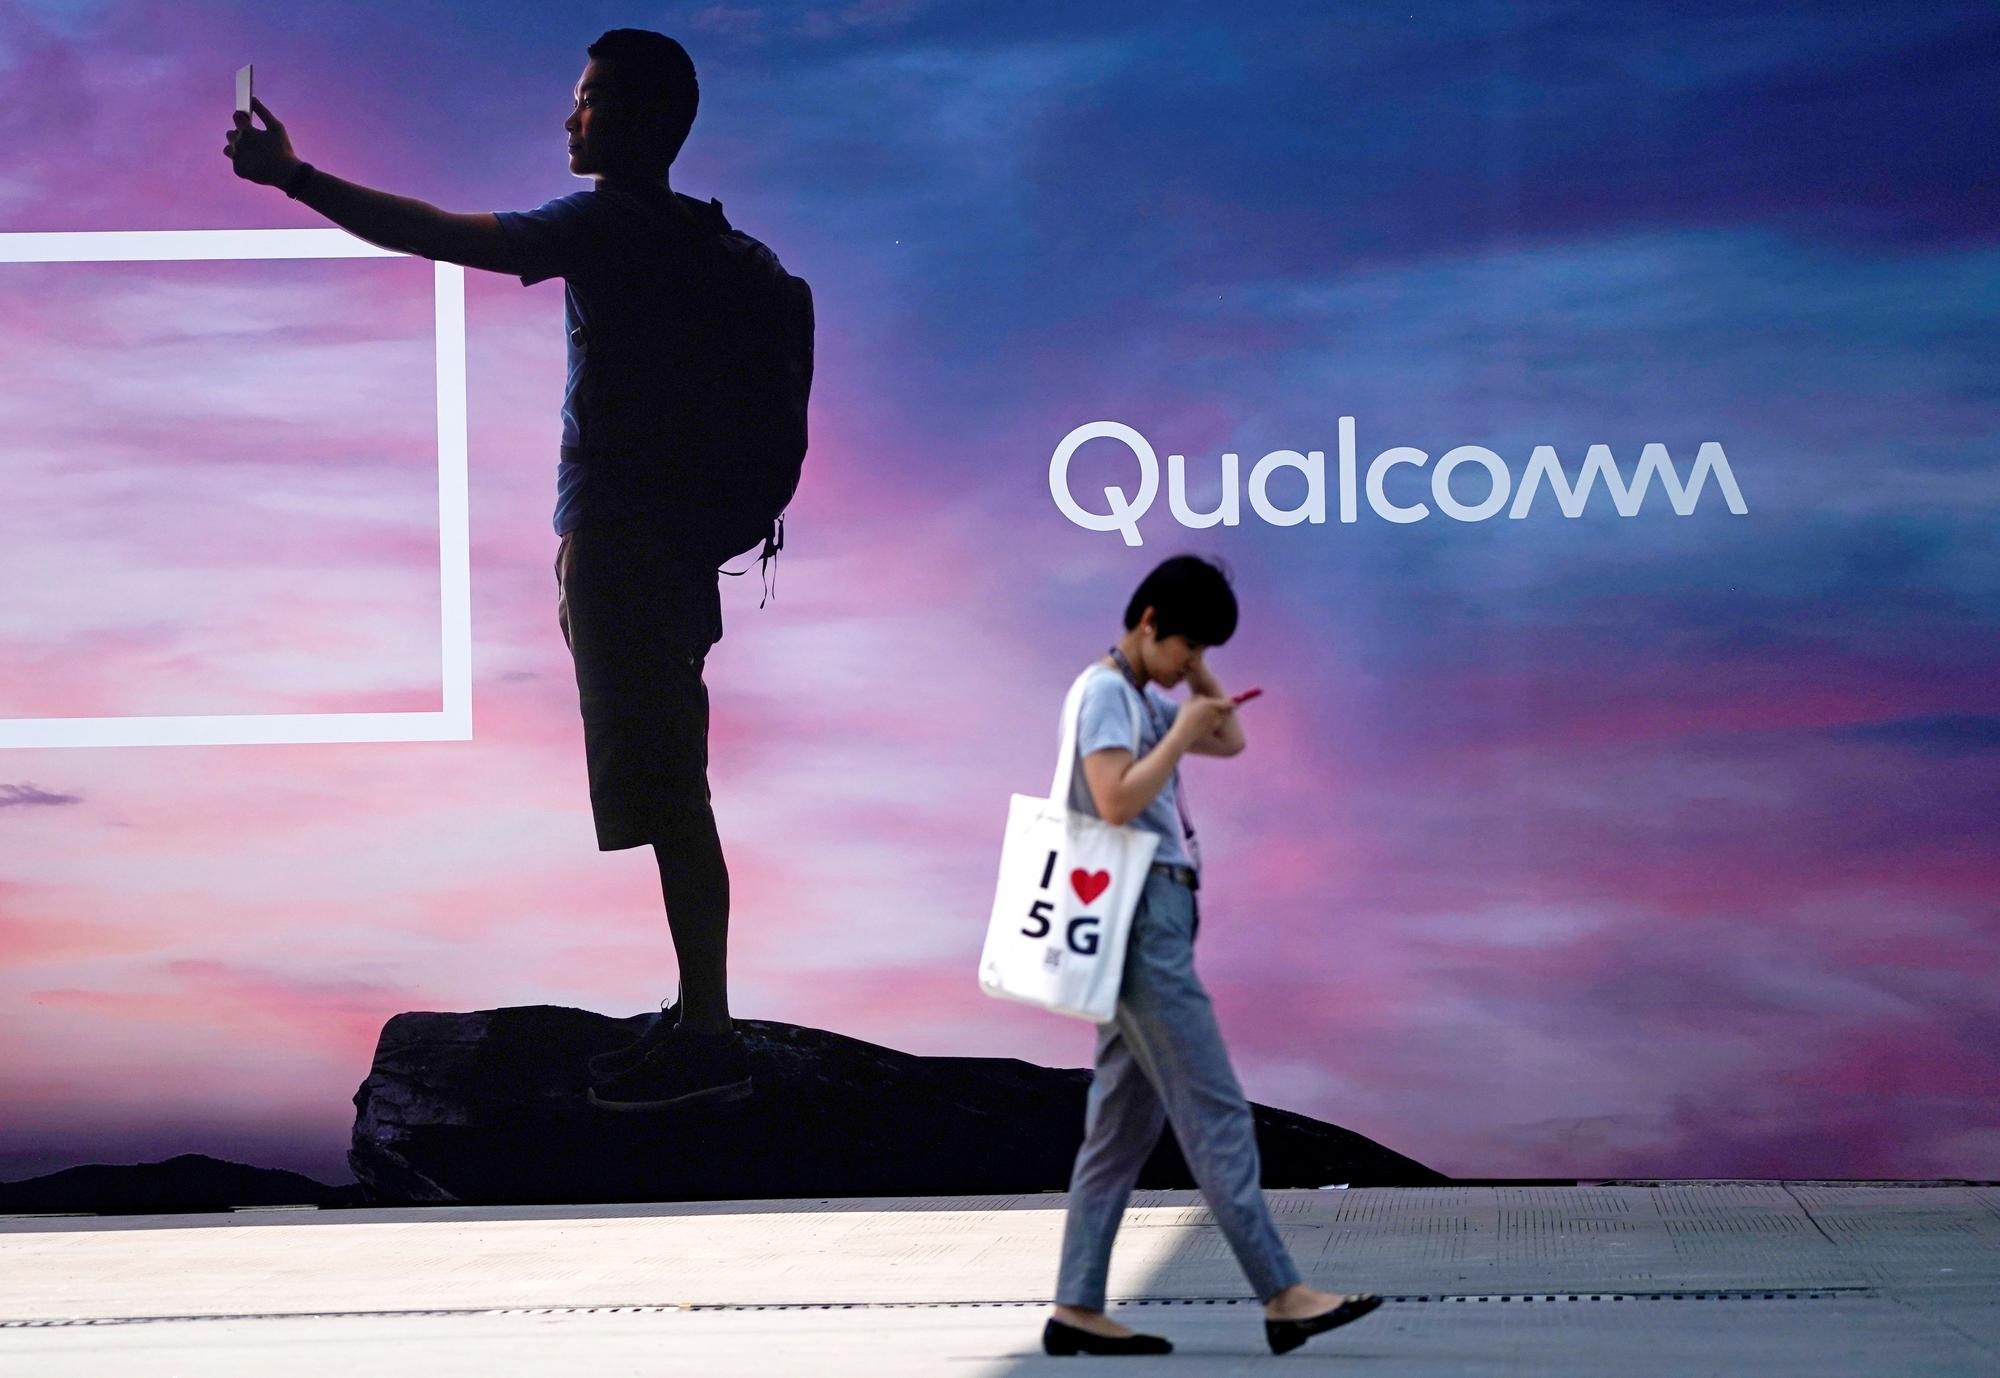 Qualcomm's outlook weighed down by Huawei's smartphone gains in China